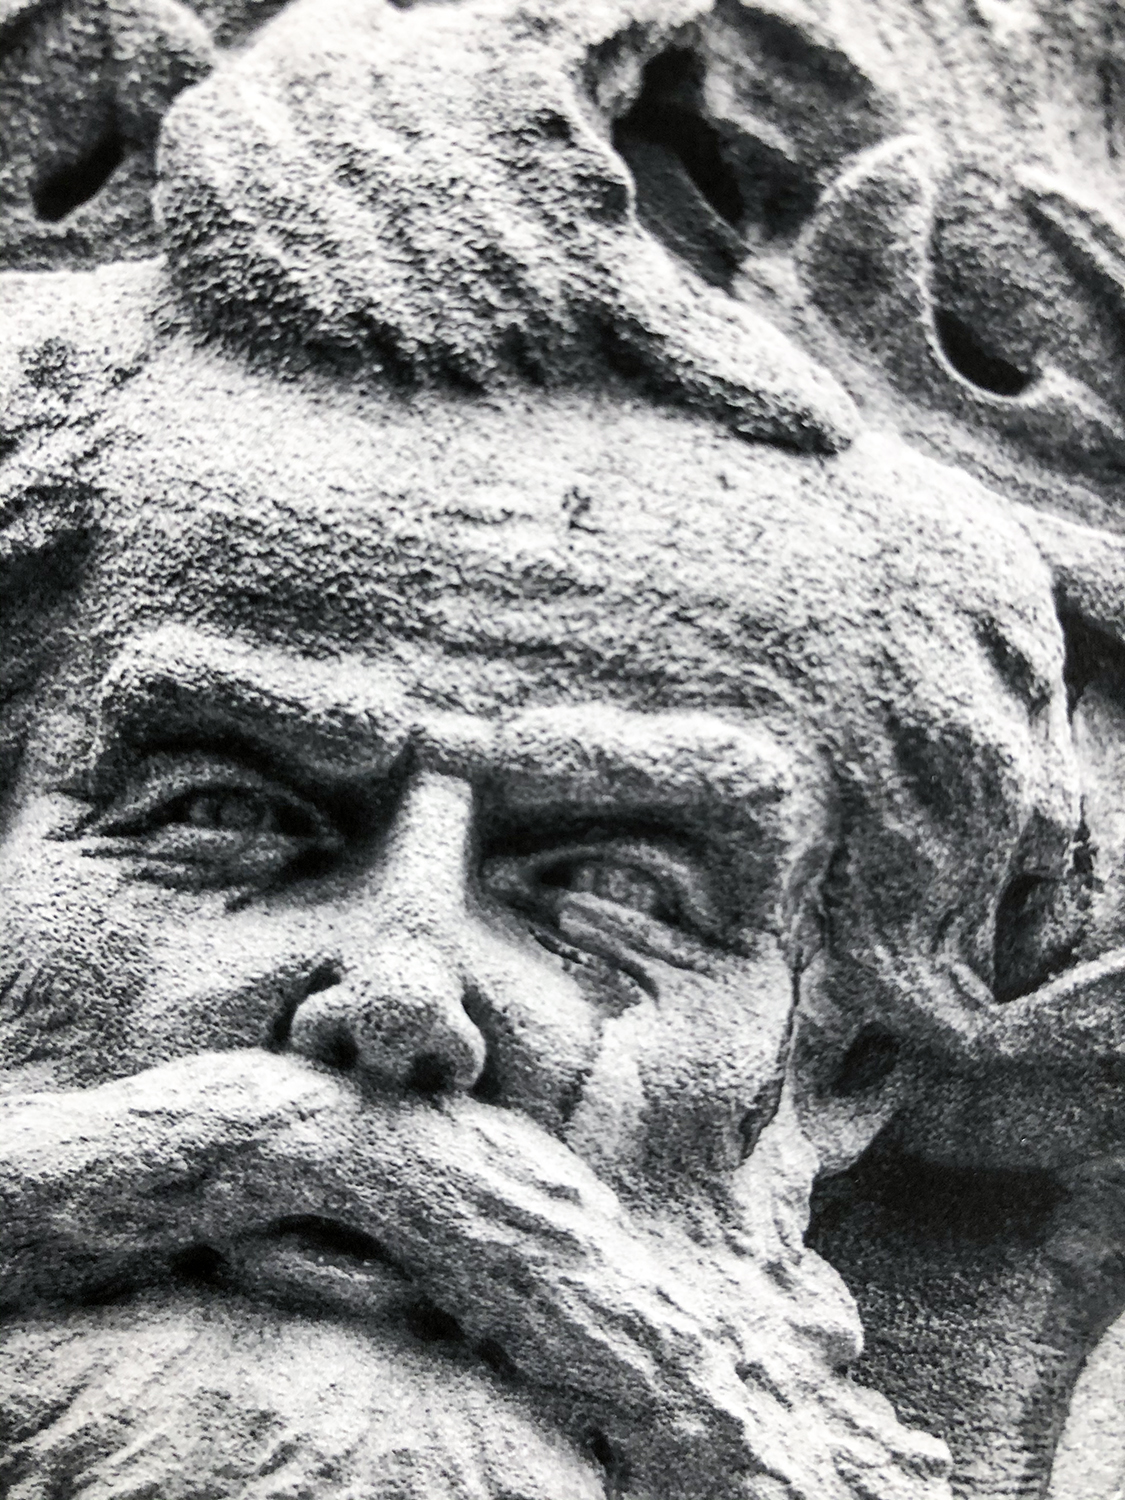 Close-up look at a photographic print of a historic stone relief sculpture on the Drhumor Building in Asheville. This face is likely modelled after a real local citizen, florist Cyrus T. C. Deake.